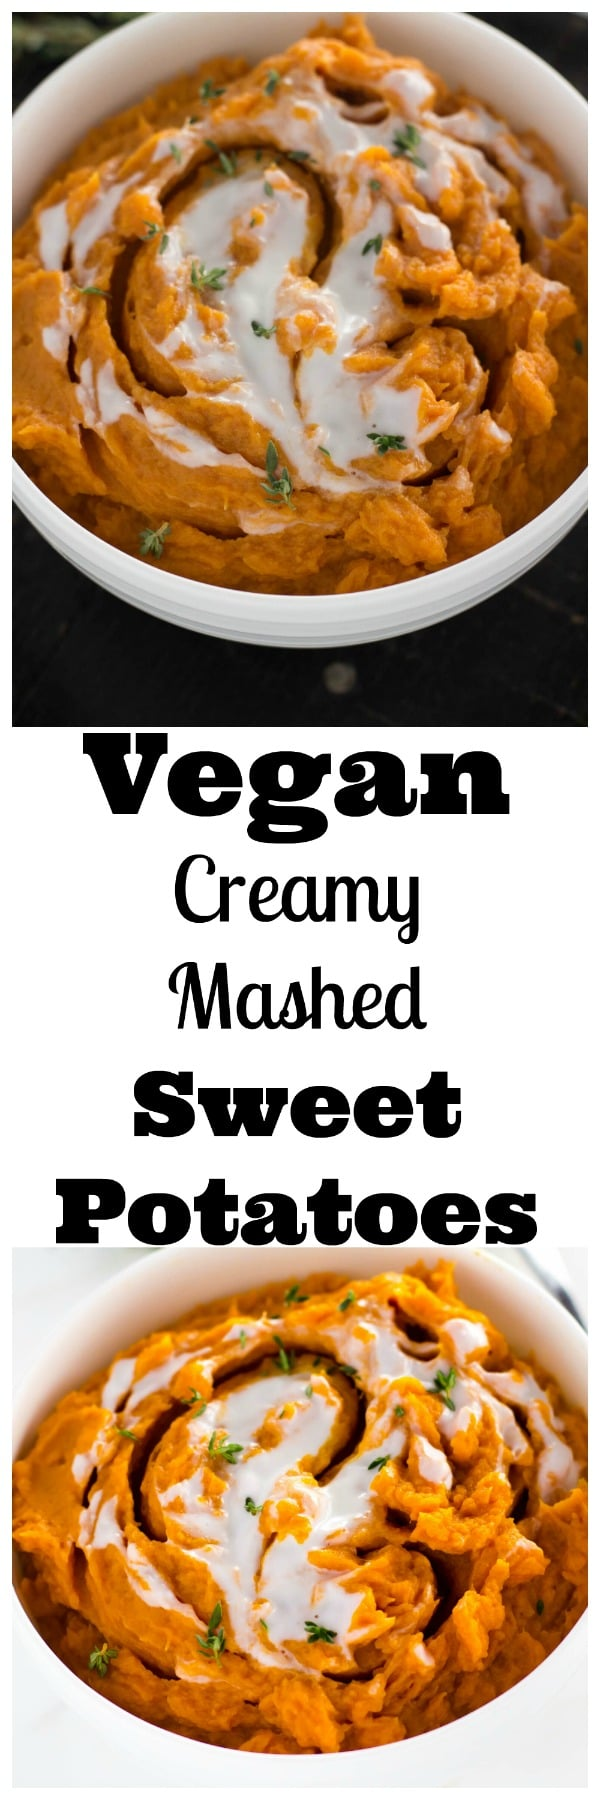 Did you ever think you can get creamy mashed potatoes without all that butter and cream? I didn't! But you can and it's fantastic! Plus it's vegan and healthier and tastier than EVER!